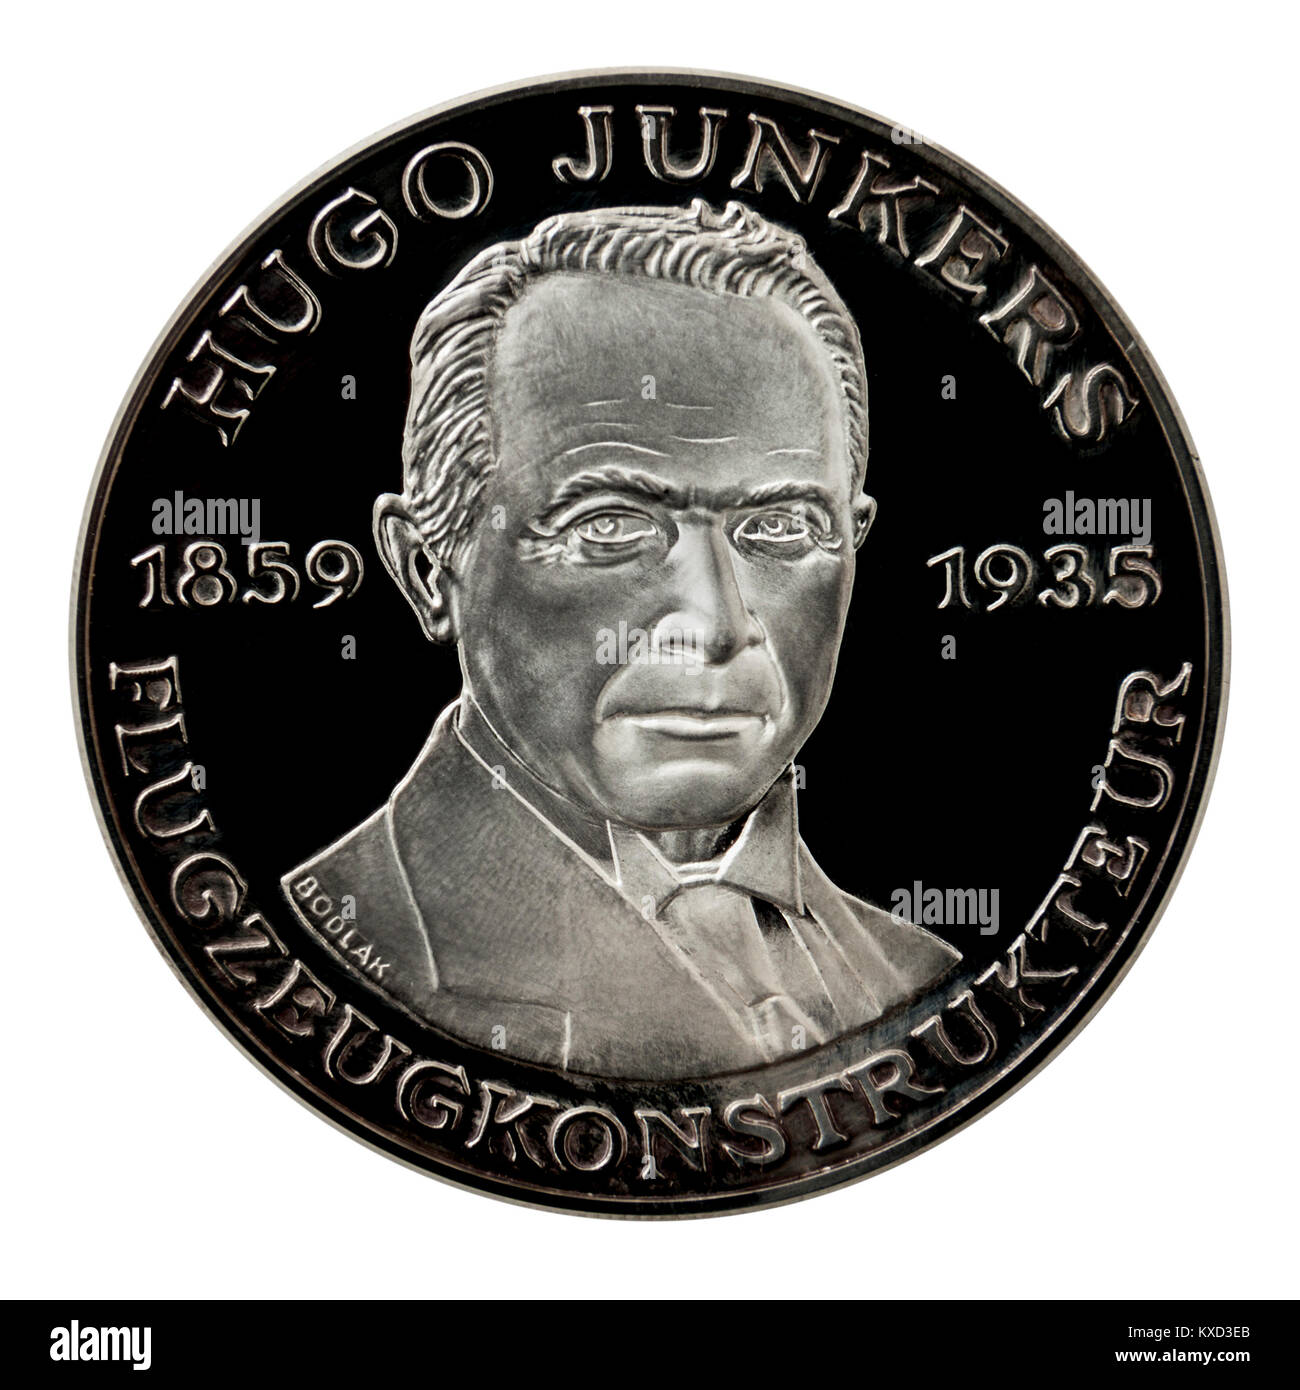 99.9% Proof Silver Medallion featuring Hugo Junkers, the famous German engineer and aircraft designer. - Stock Image